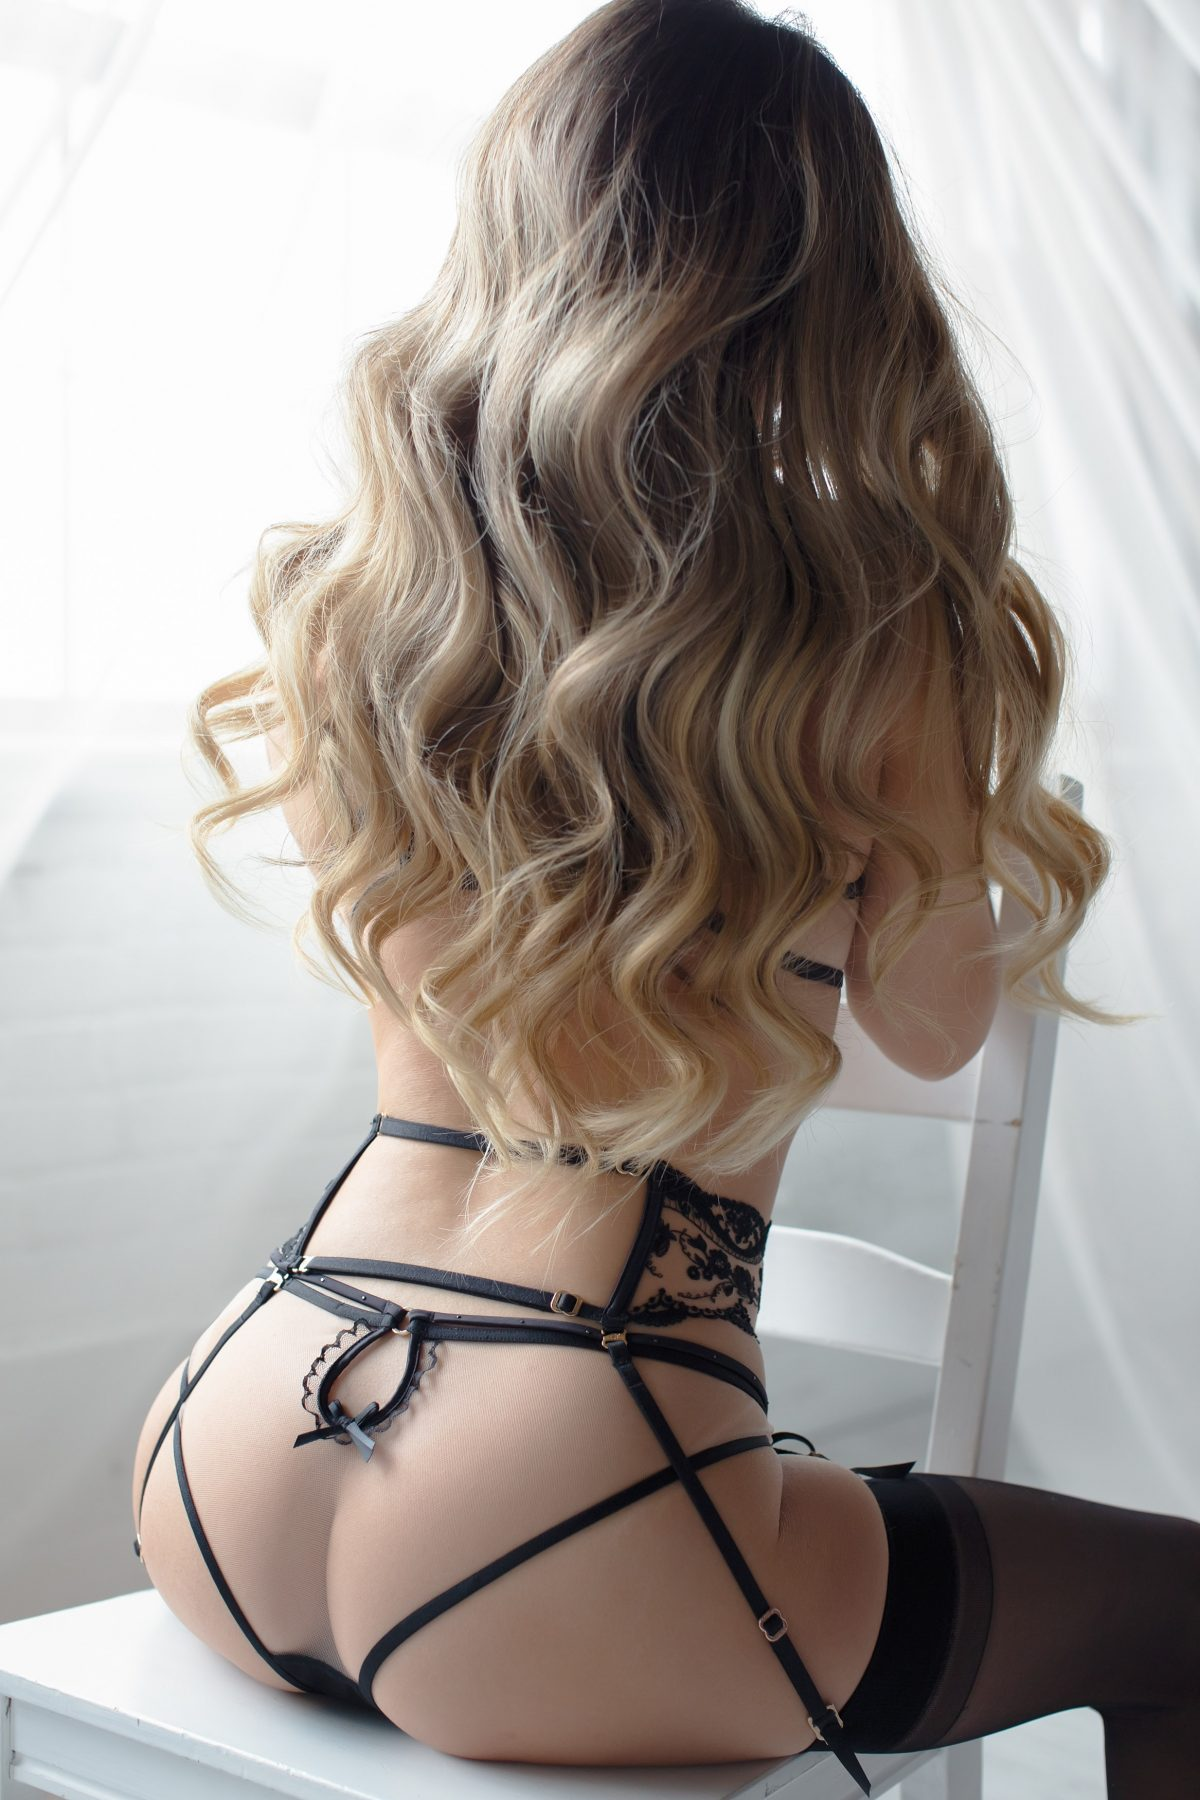 Toronto escorts companion upscale Aria Interests Duo Disability-friendly Non-smoking Age Young Figure Slender Petite Breasts Natural Hair Blonde Ethnicity Asian Tattoos